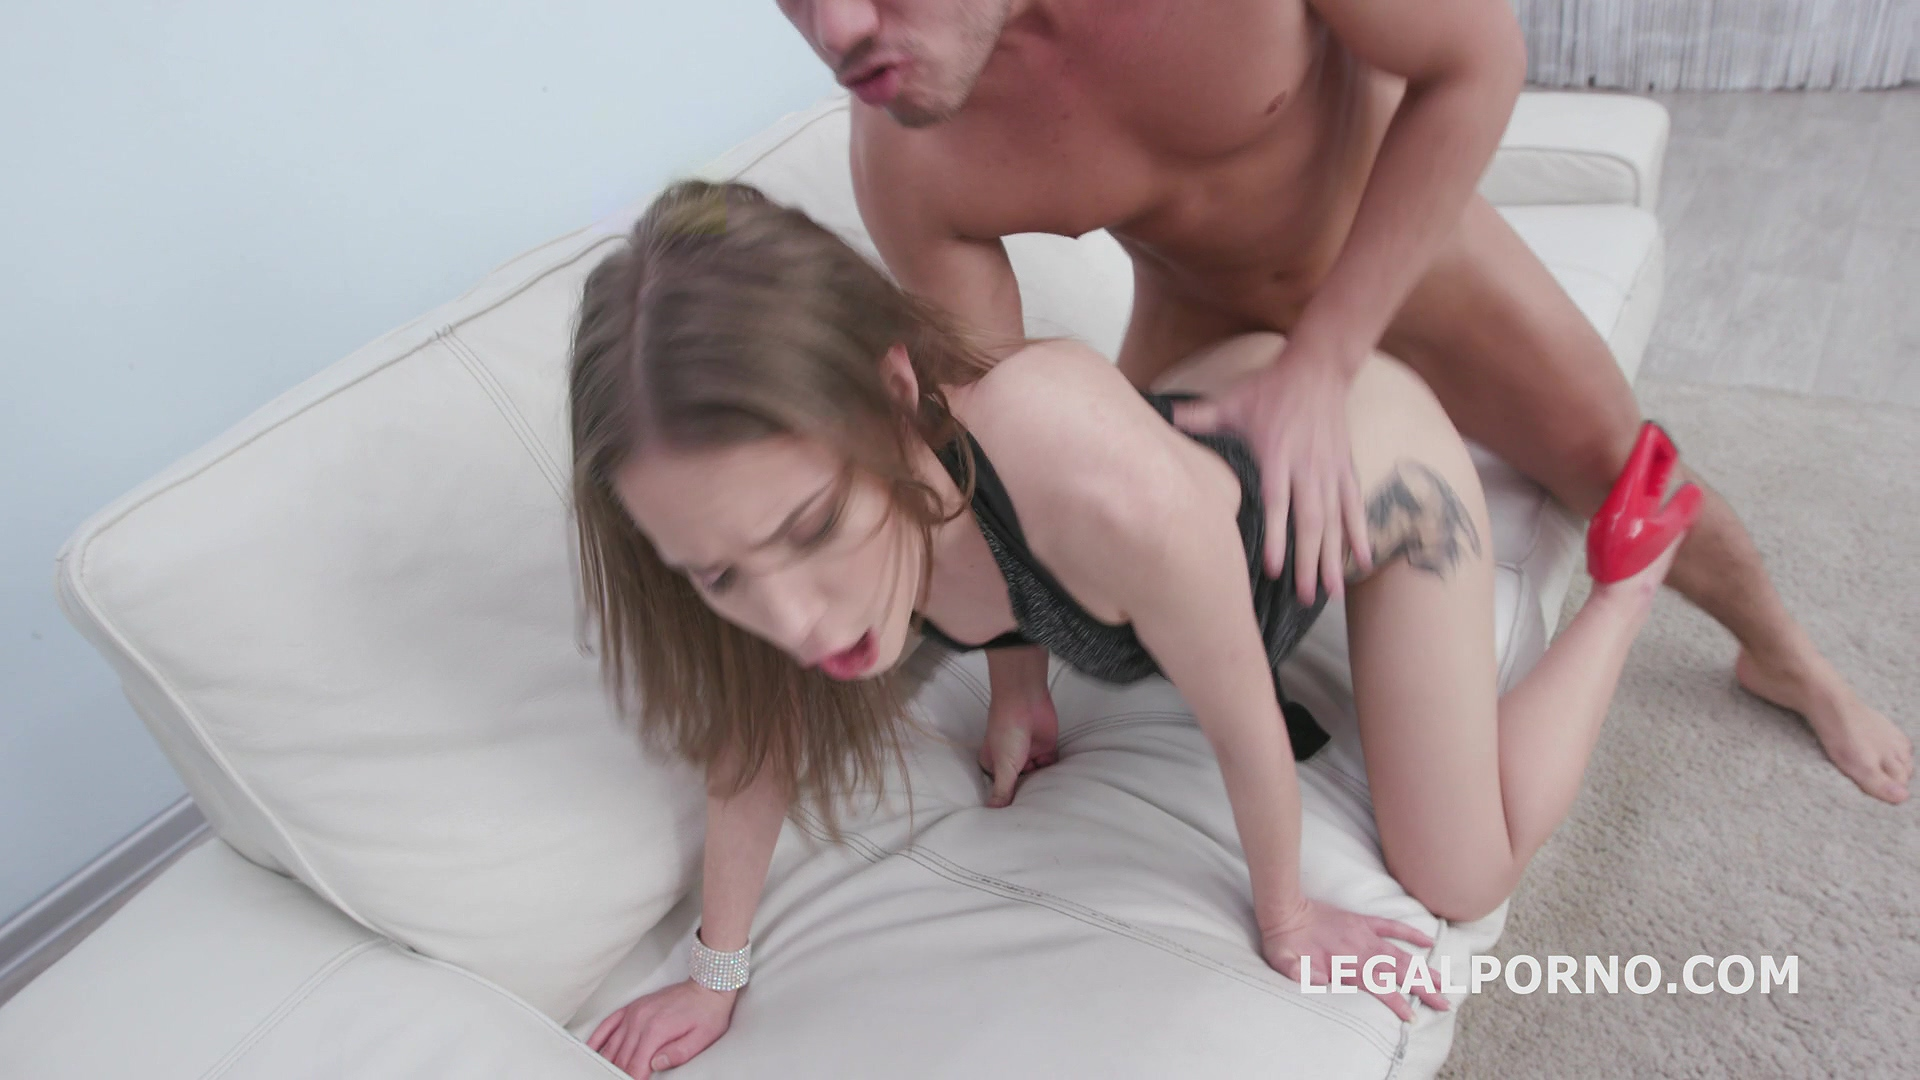 dap_destination_stasia_si_first_time_dap_with_balls_deep_anal_gapes_and_creampie_swallow_gio1393_fhd_mp4_20200317_112042_612.jpg